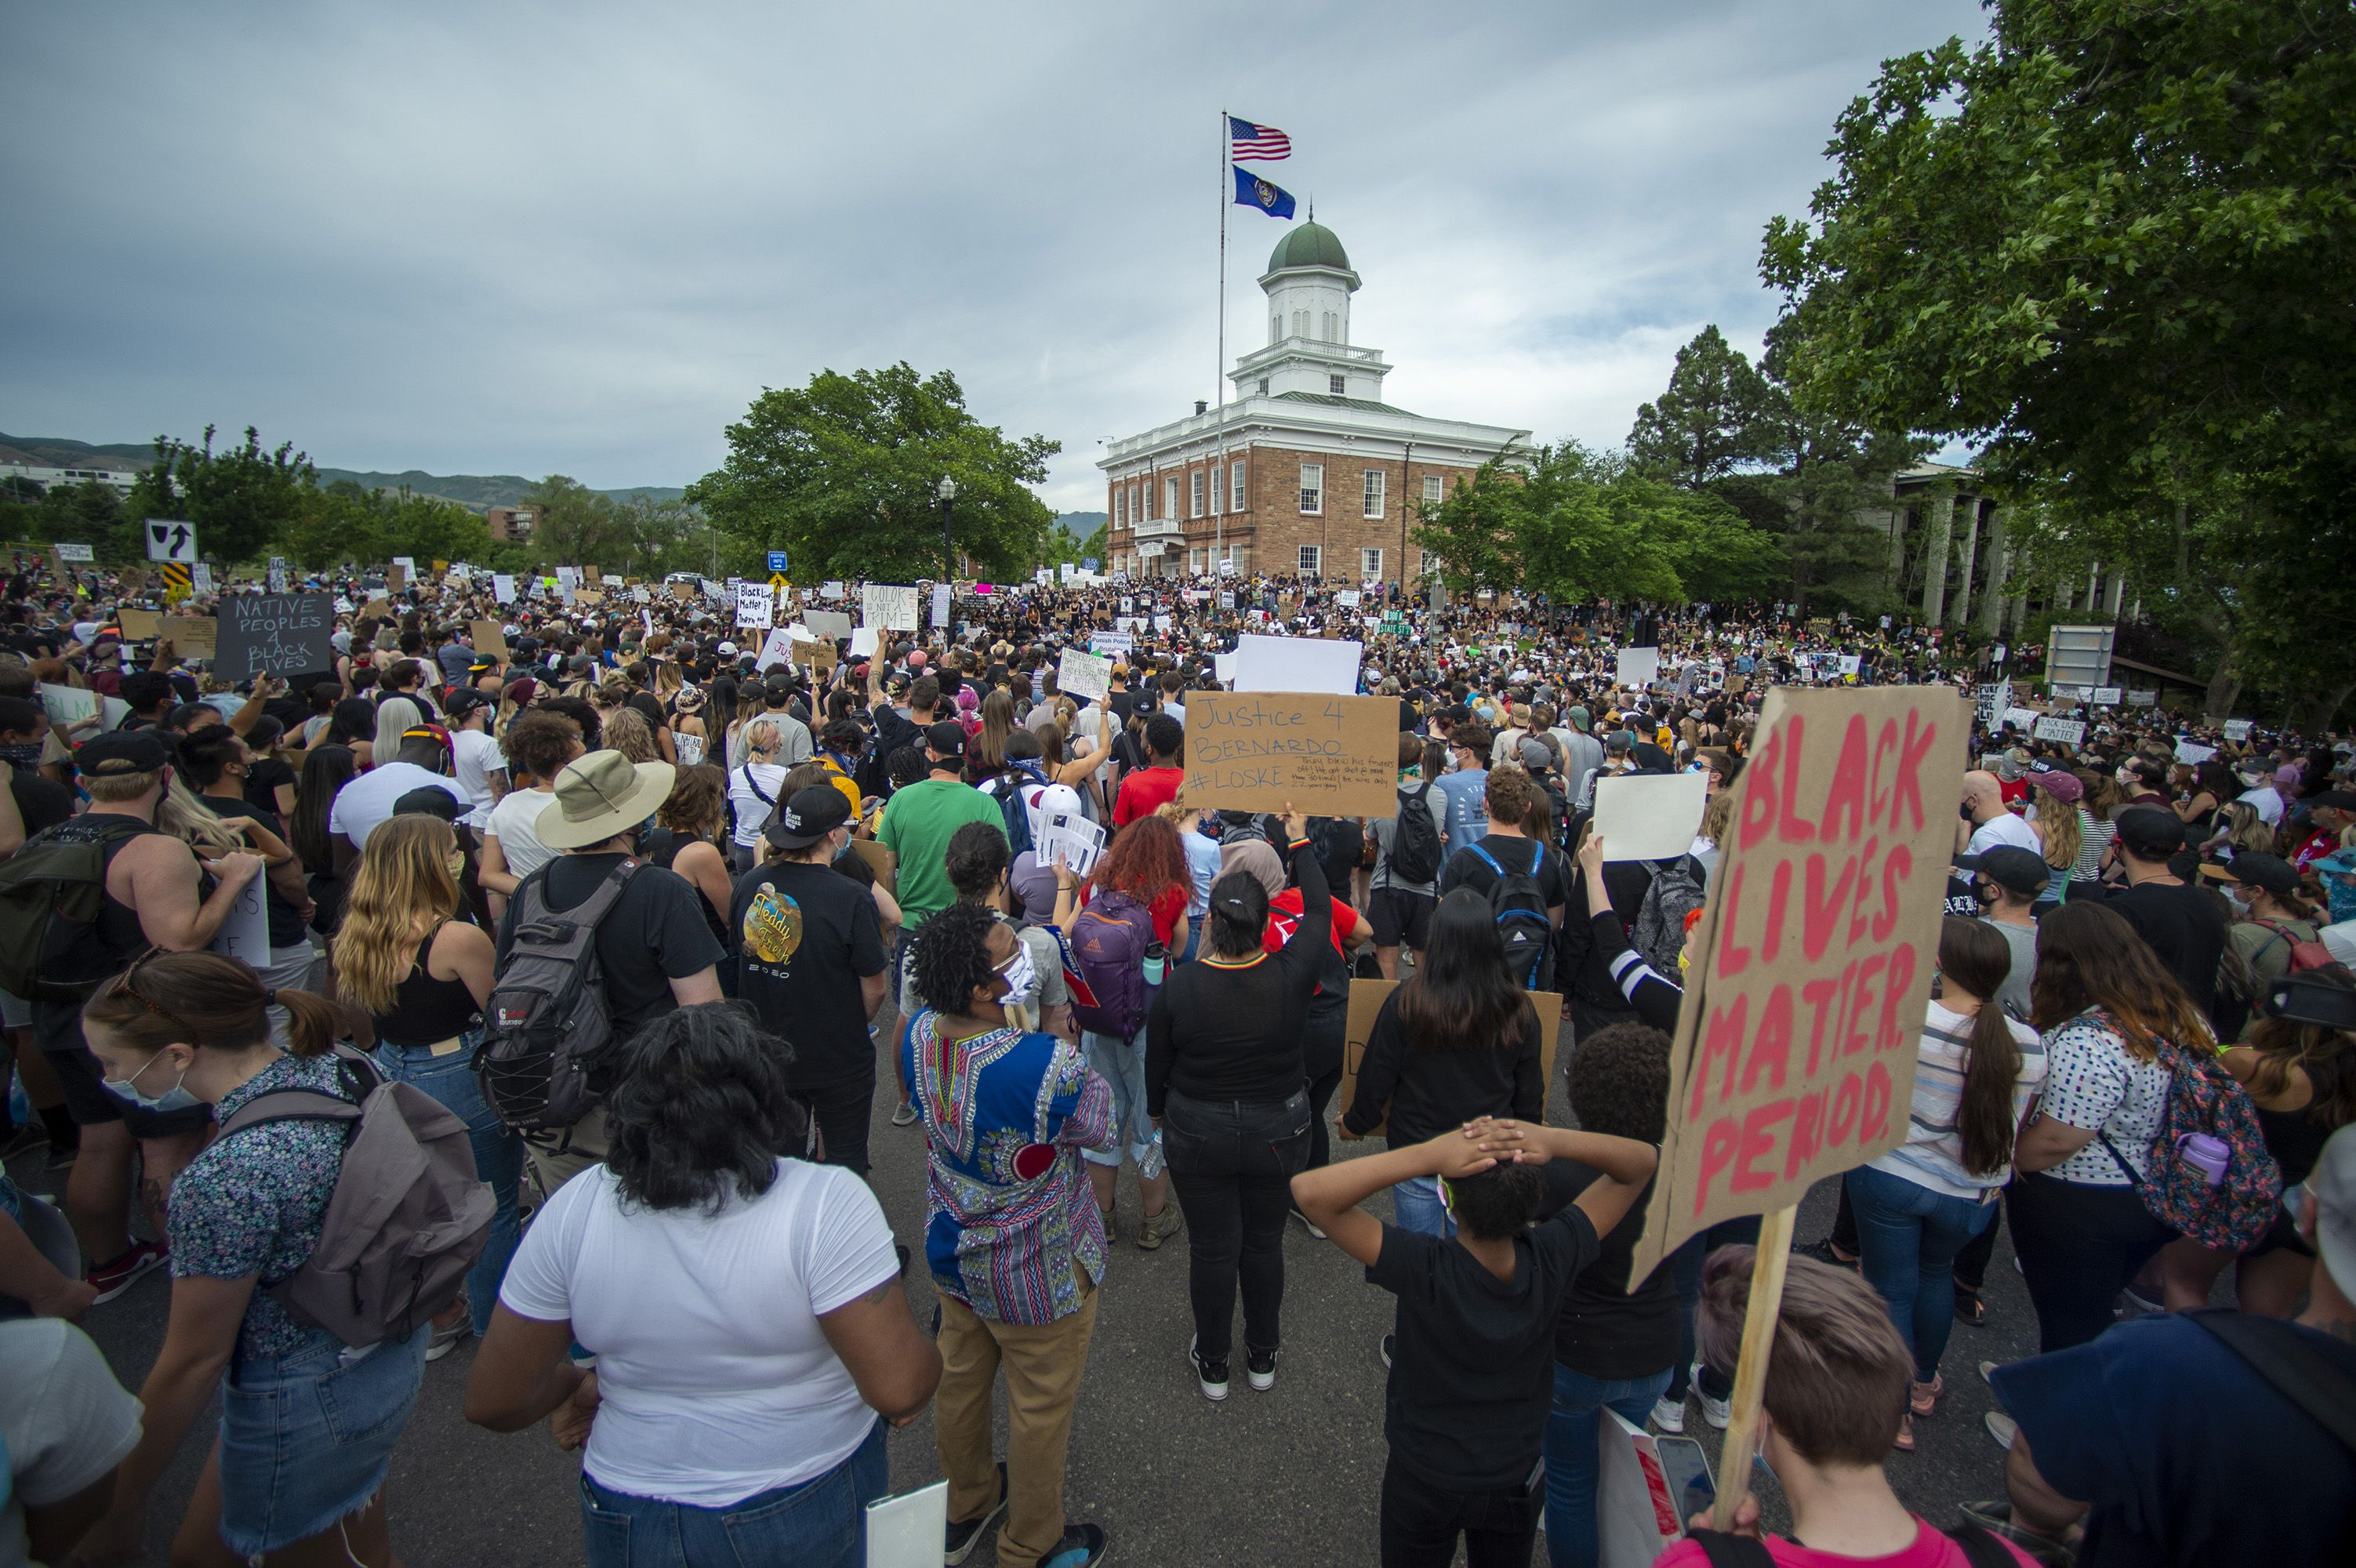 (Rick Egan  |  The Salt Lake Tribune) Protesters gather in front of the State Capitol during a demonstration in Salt Lake City, Tuesday, June 2, 2020.